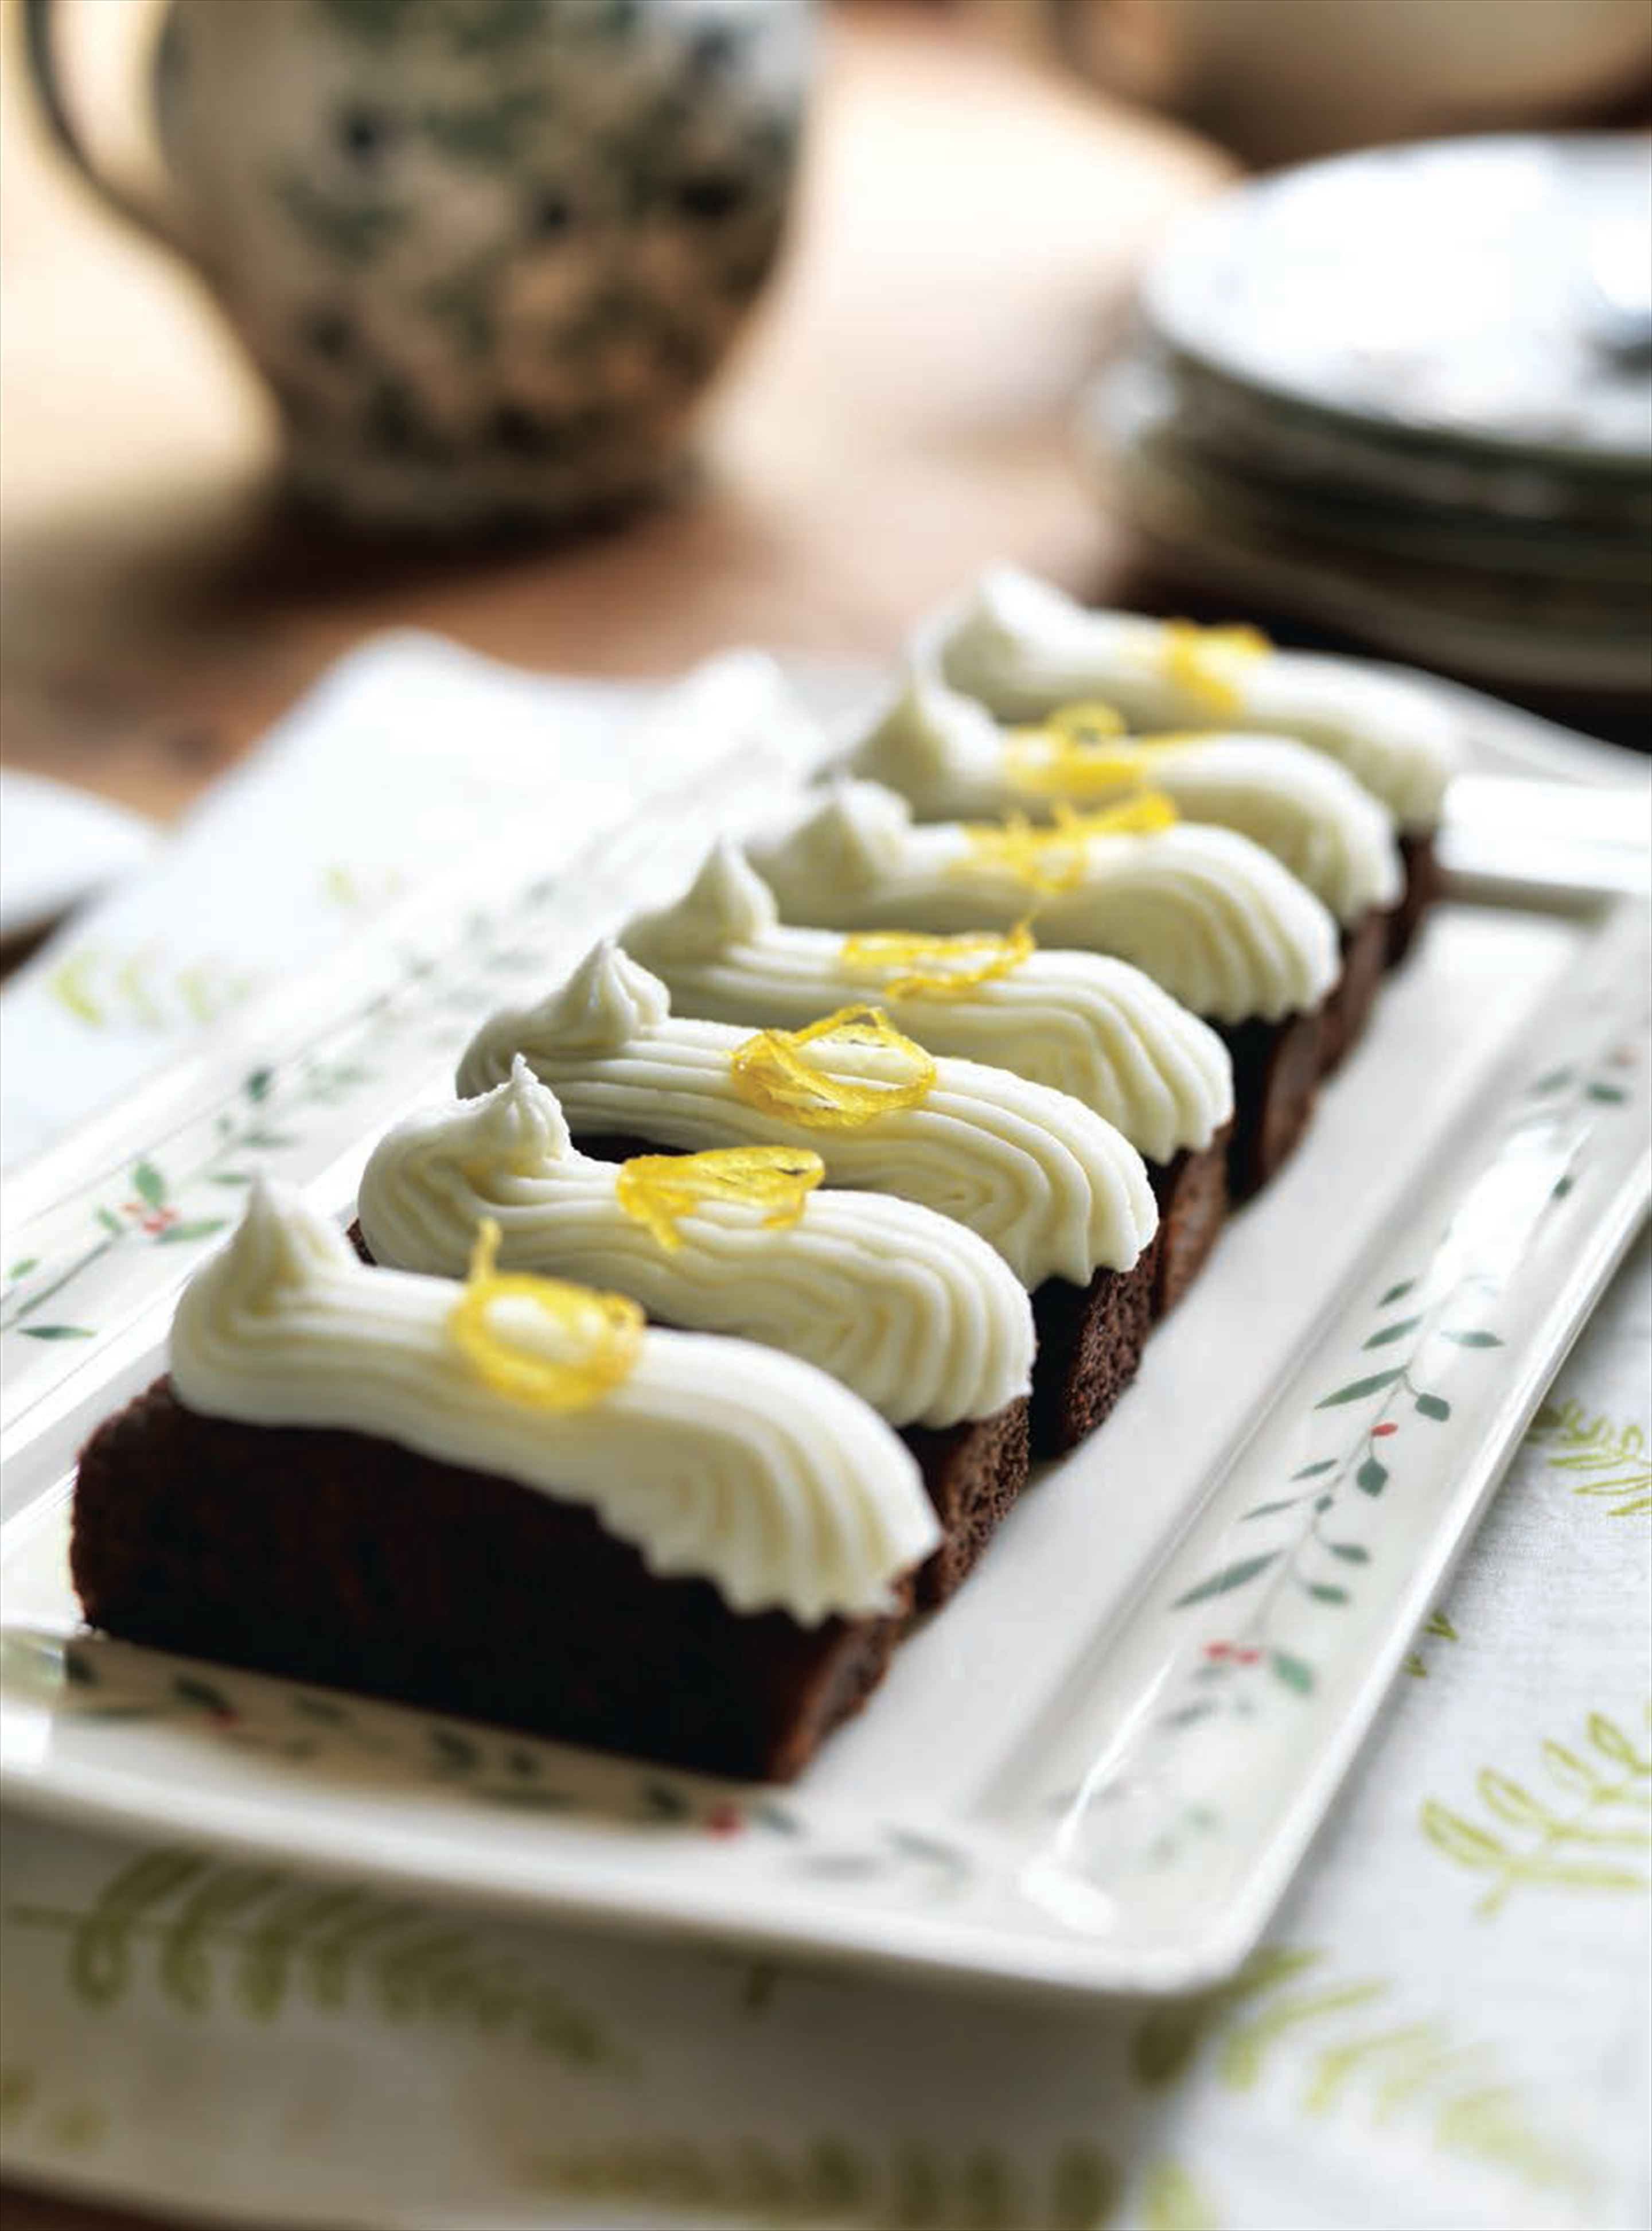 Treacle loaf cakes with lemon icing